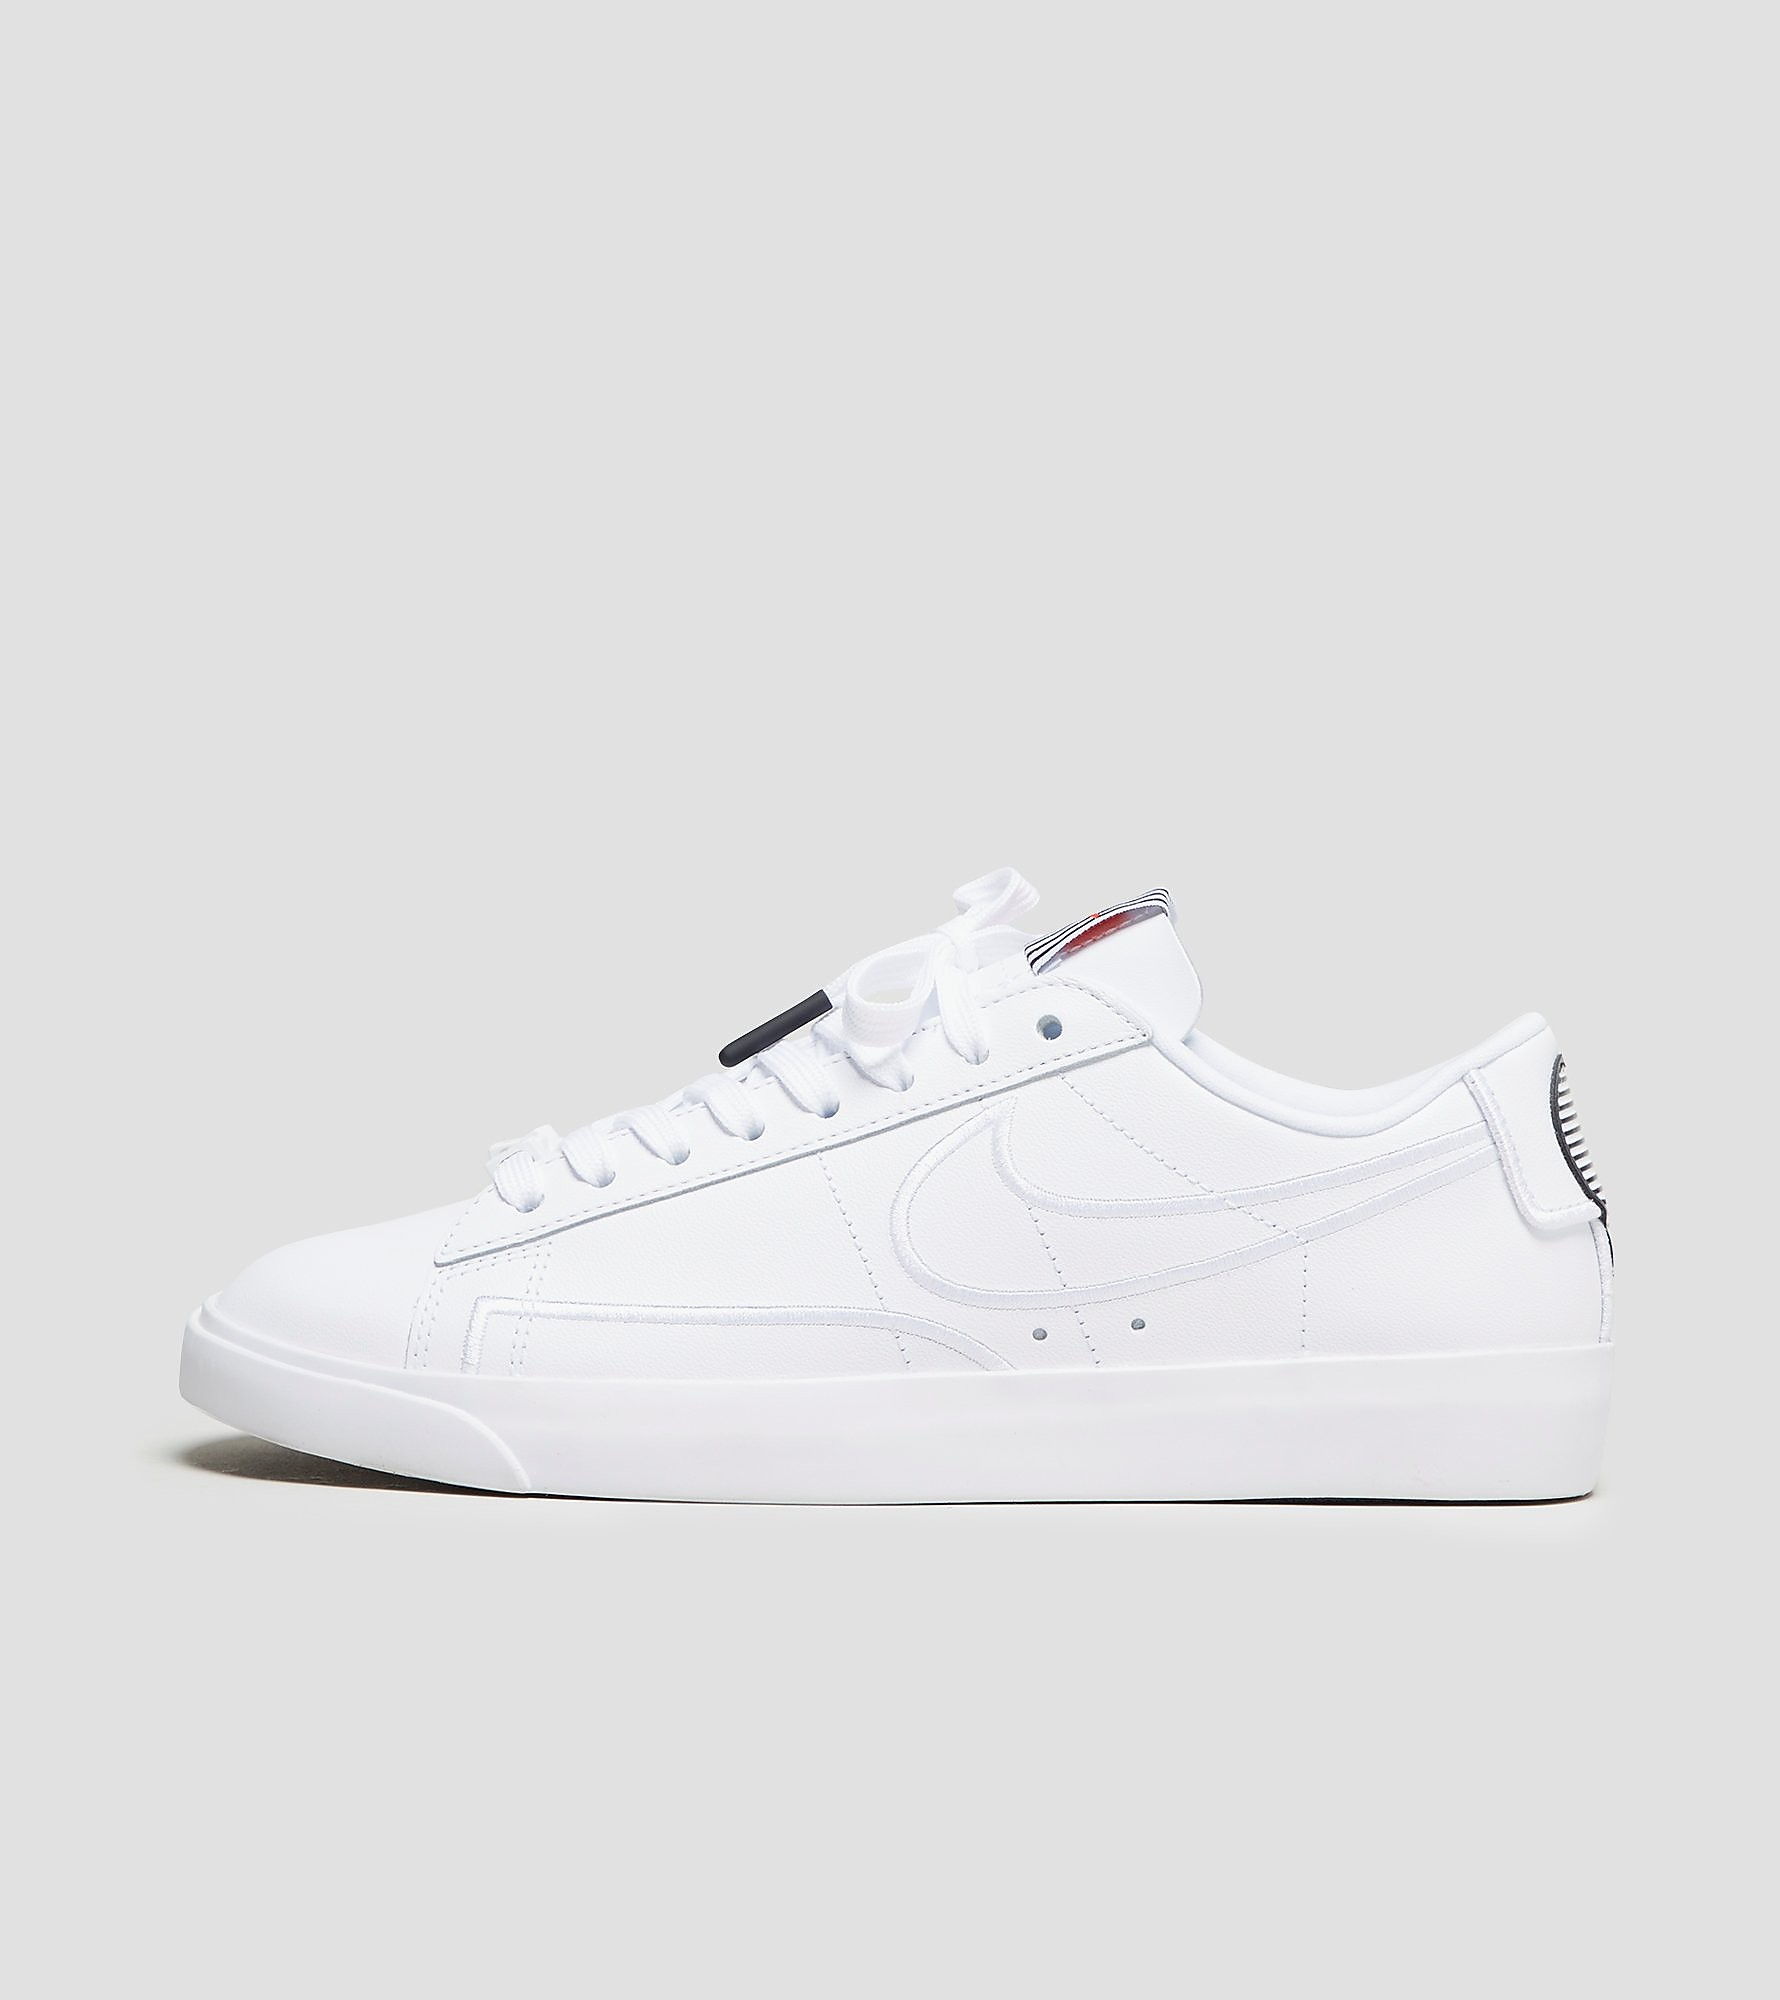 Nike Blazer Low LX 'Valentine's Day' Women's